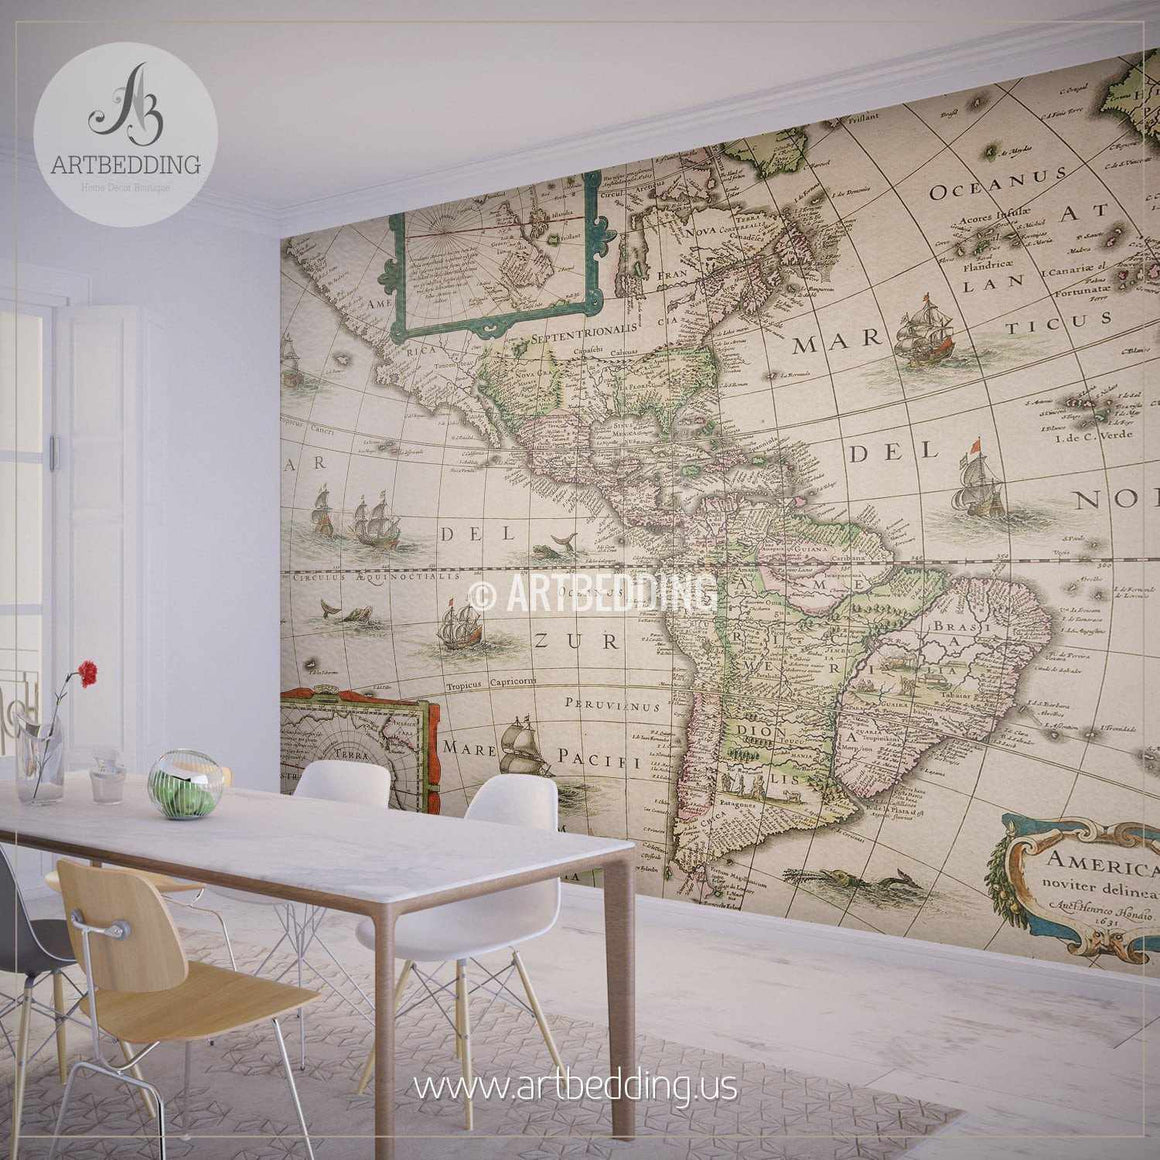 America map dated 1631 Wall Mural, Self Adhesive Peel & Stick Photo Mural, Atlas wall mural, mural home decor wall mural